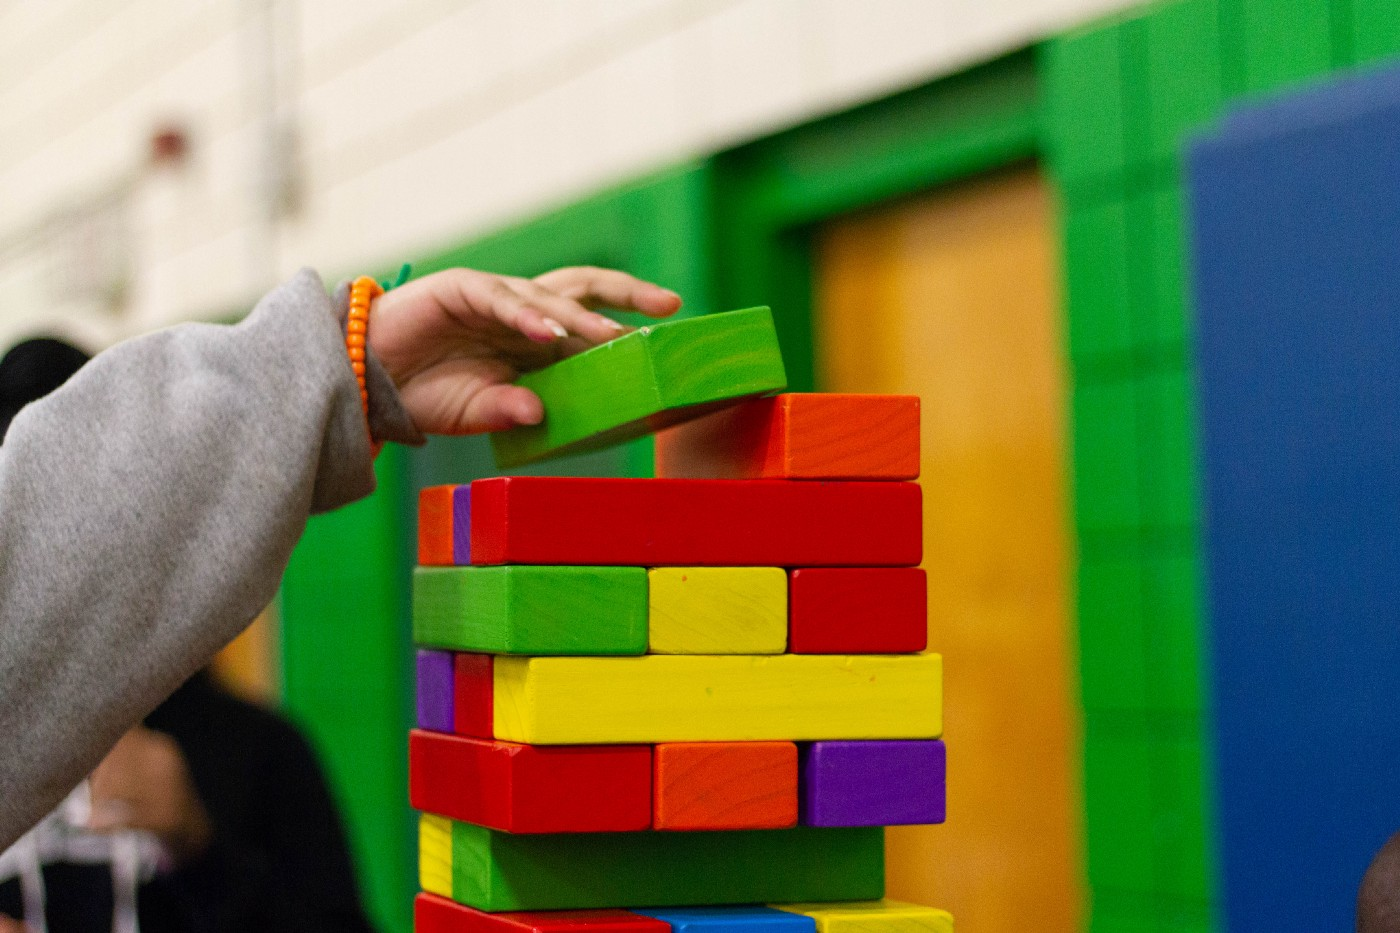 Green, red and yellow building blocks. A child adds a green building block to the top of the tower.